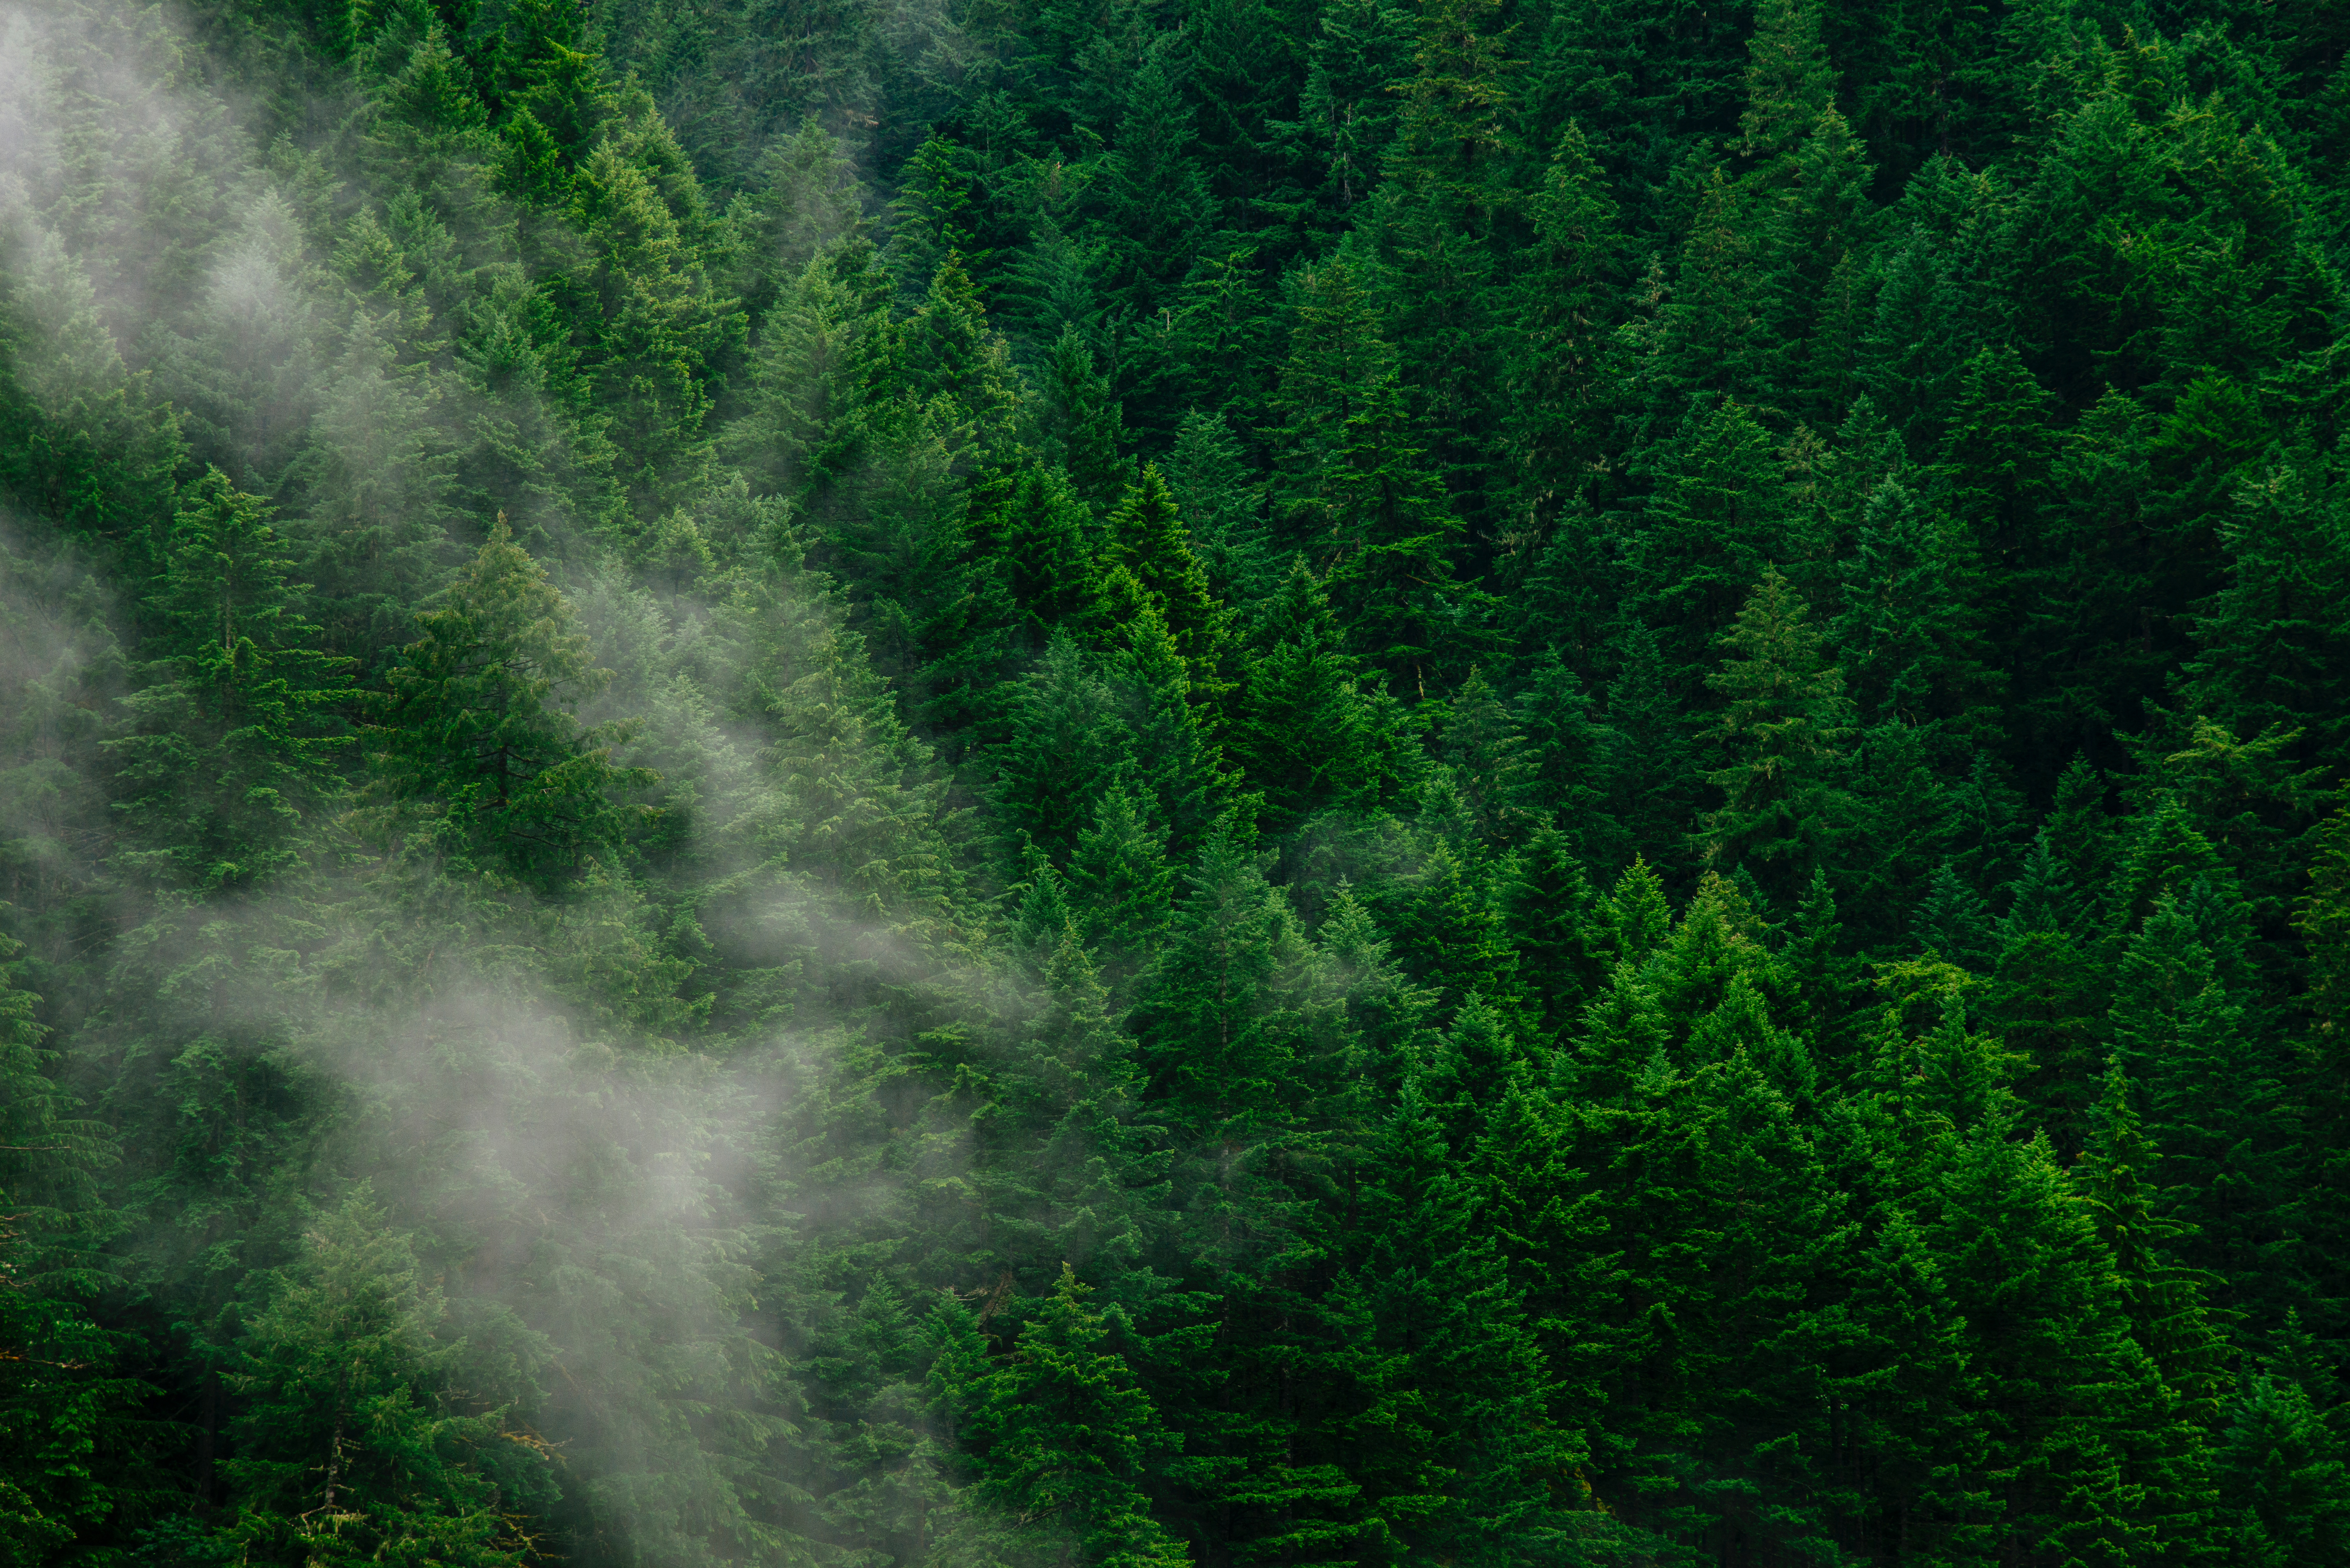 142487 download wallpaper Forest, Nature, Trees, View From Above, Fog screensavers and pictures for free